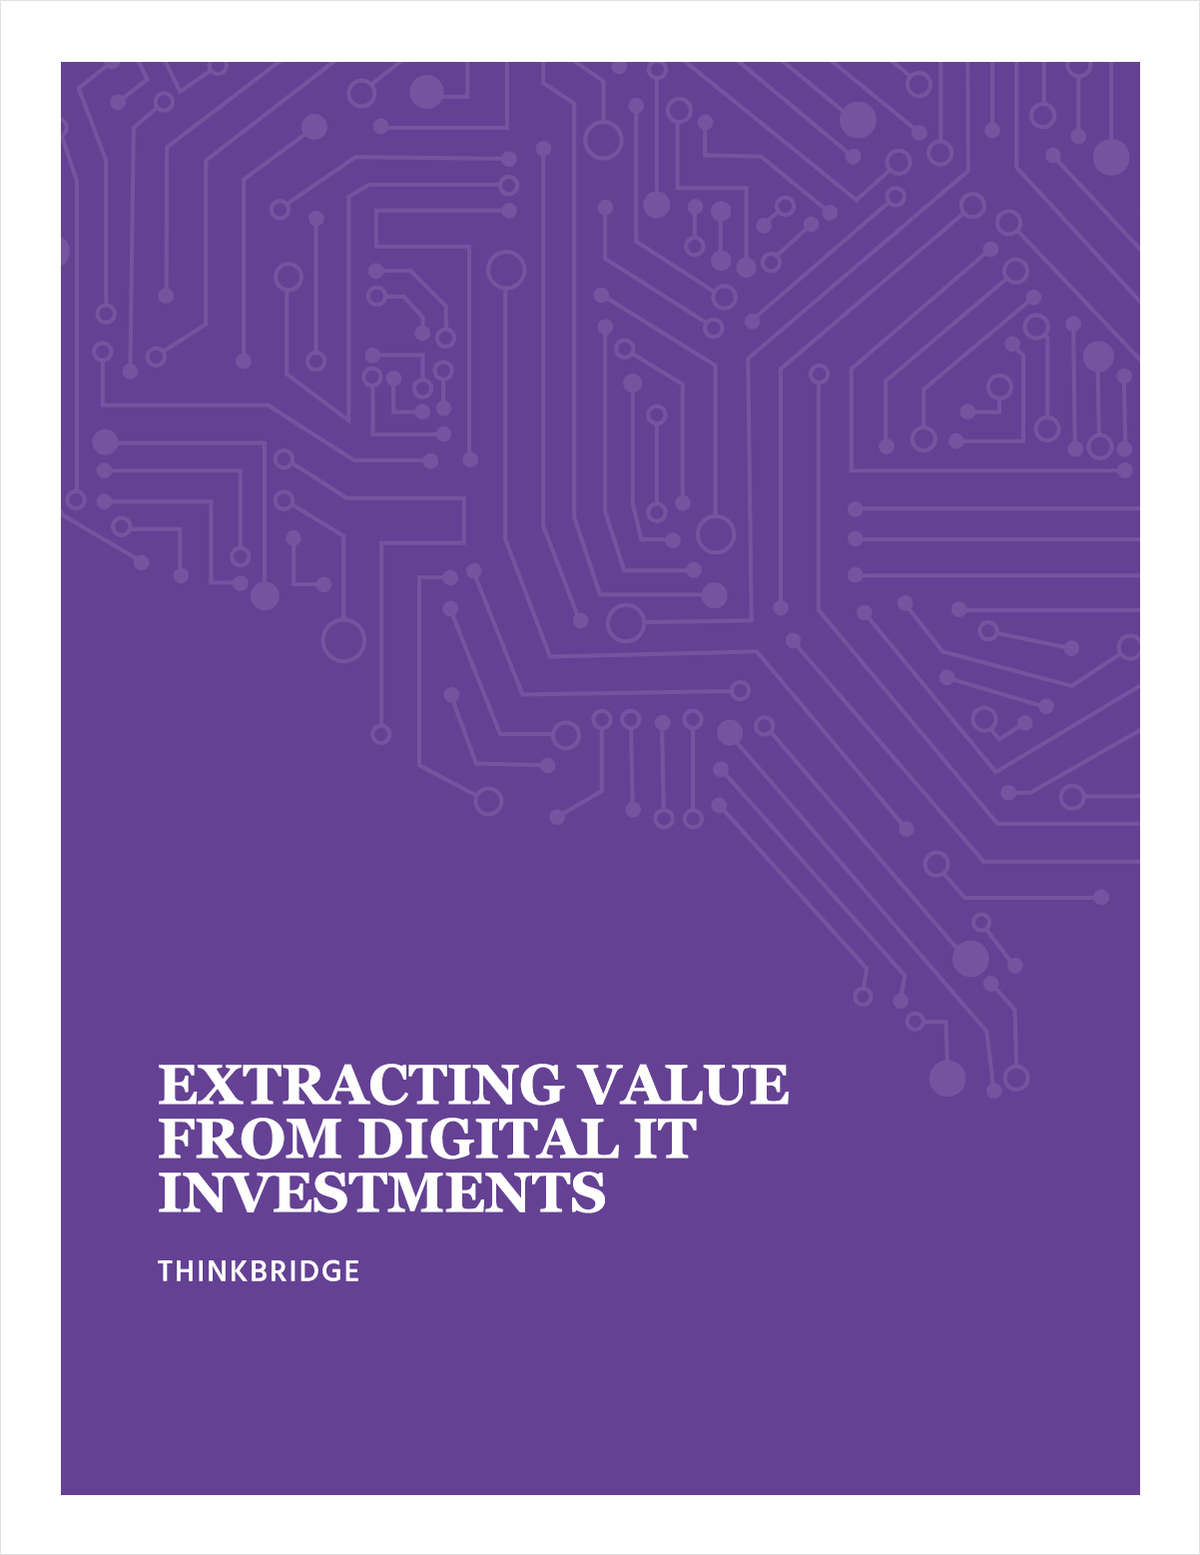 Extracting Value from your Digital IT Investments